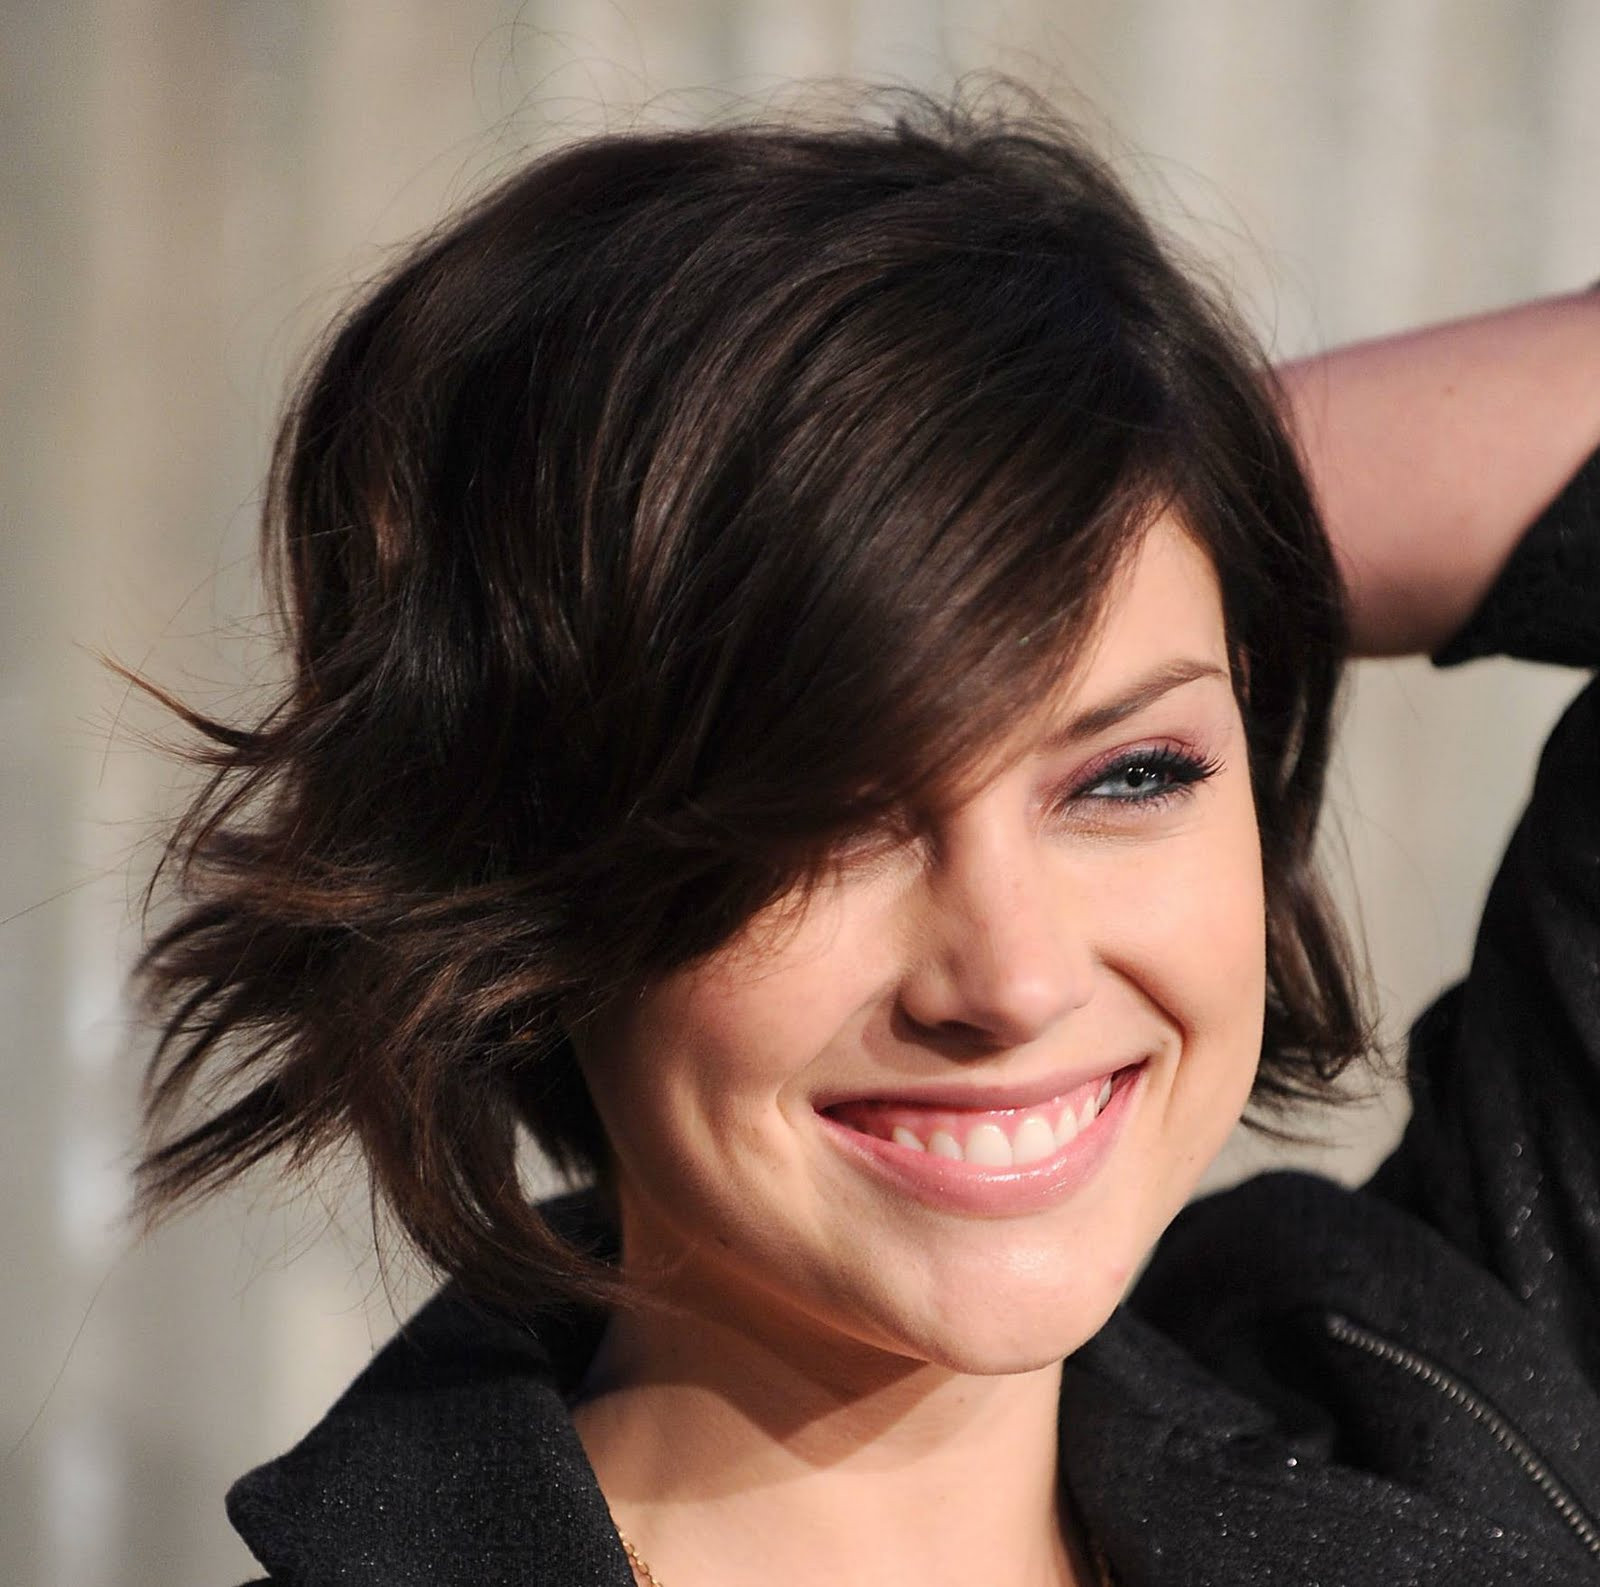 Best ideas about Hairstyle Short Hair . Save or Pin China Hairstyles For Girls Now.